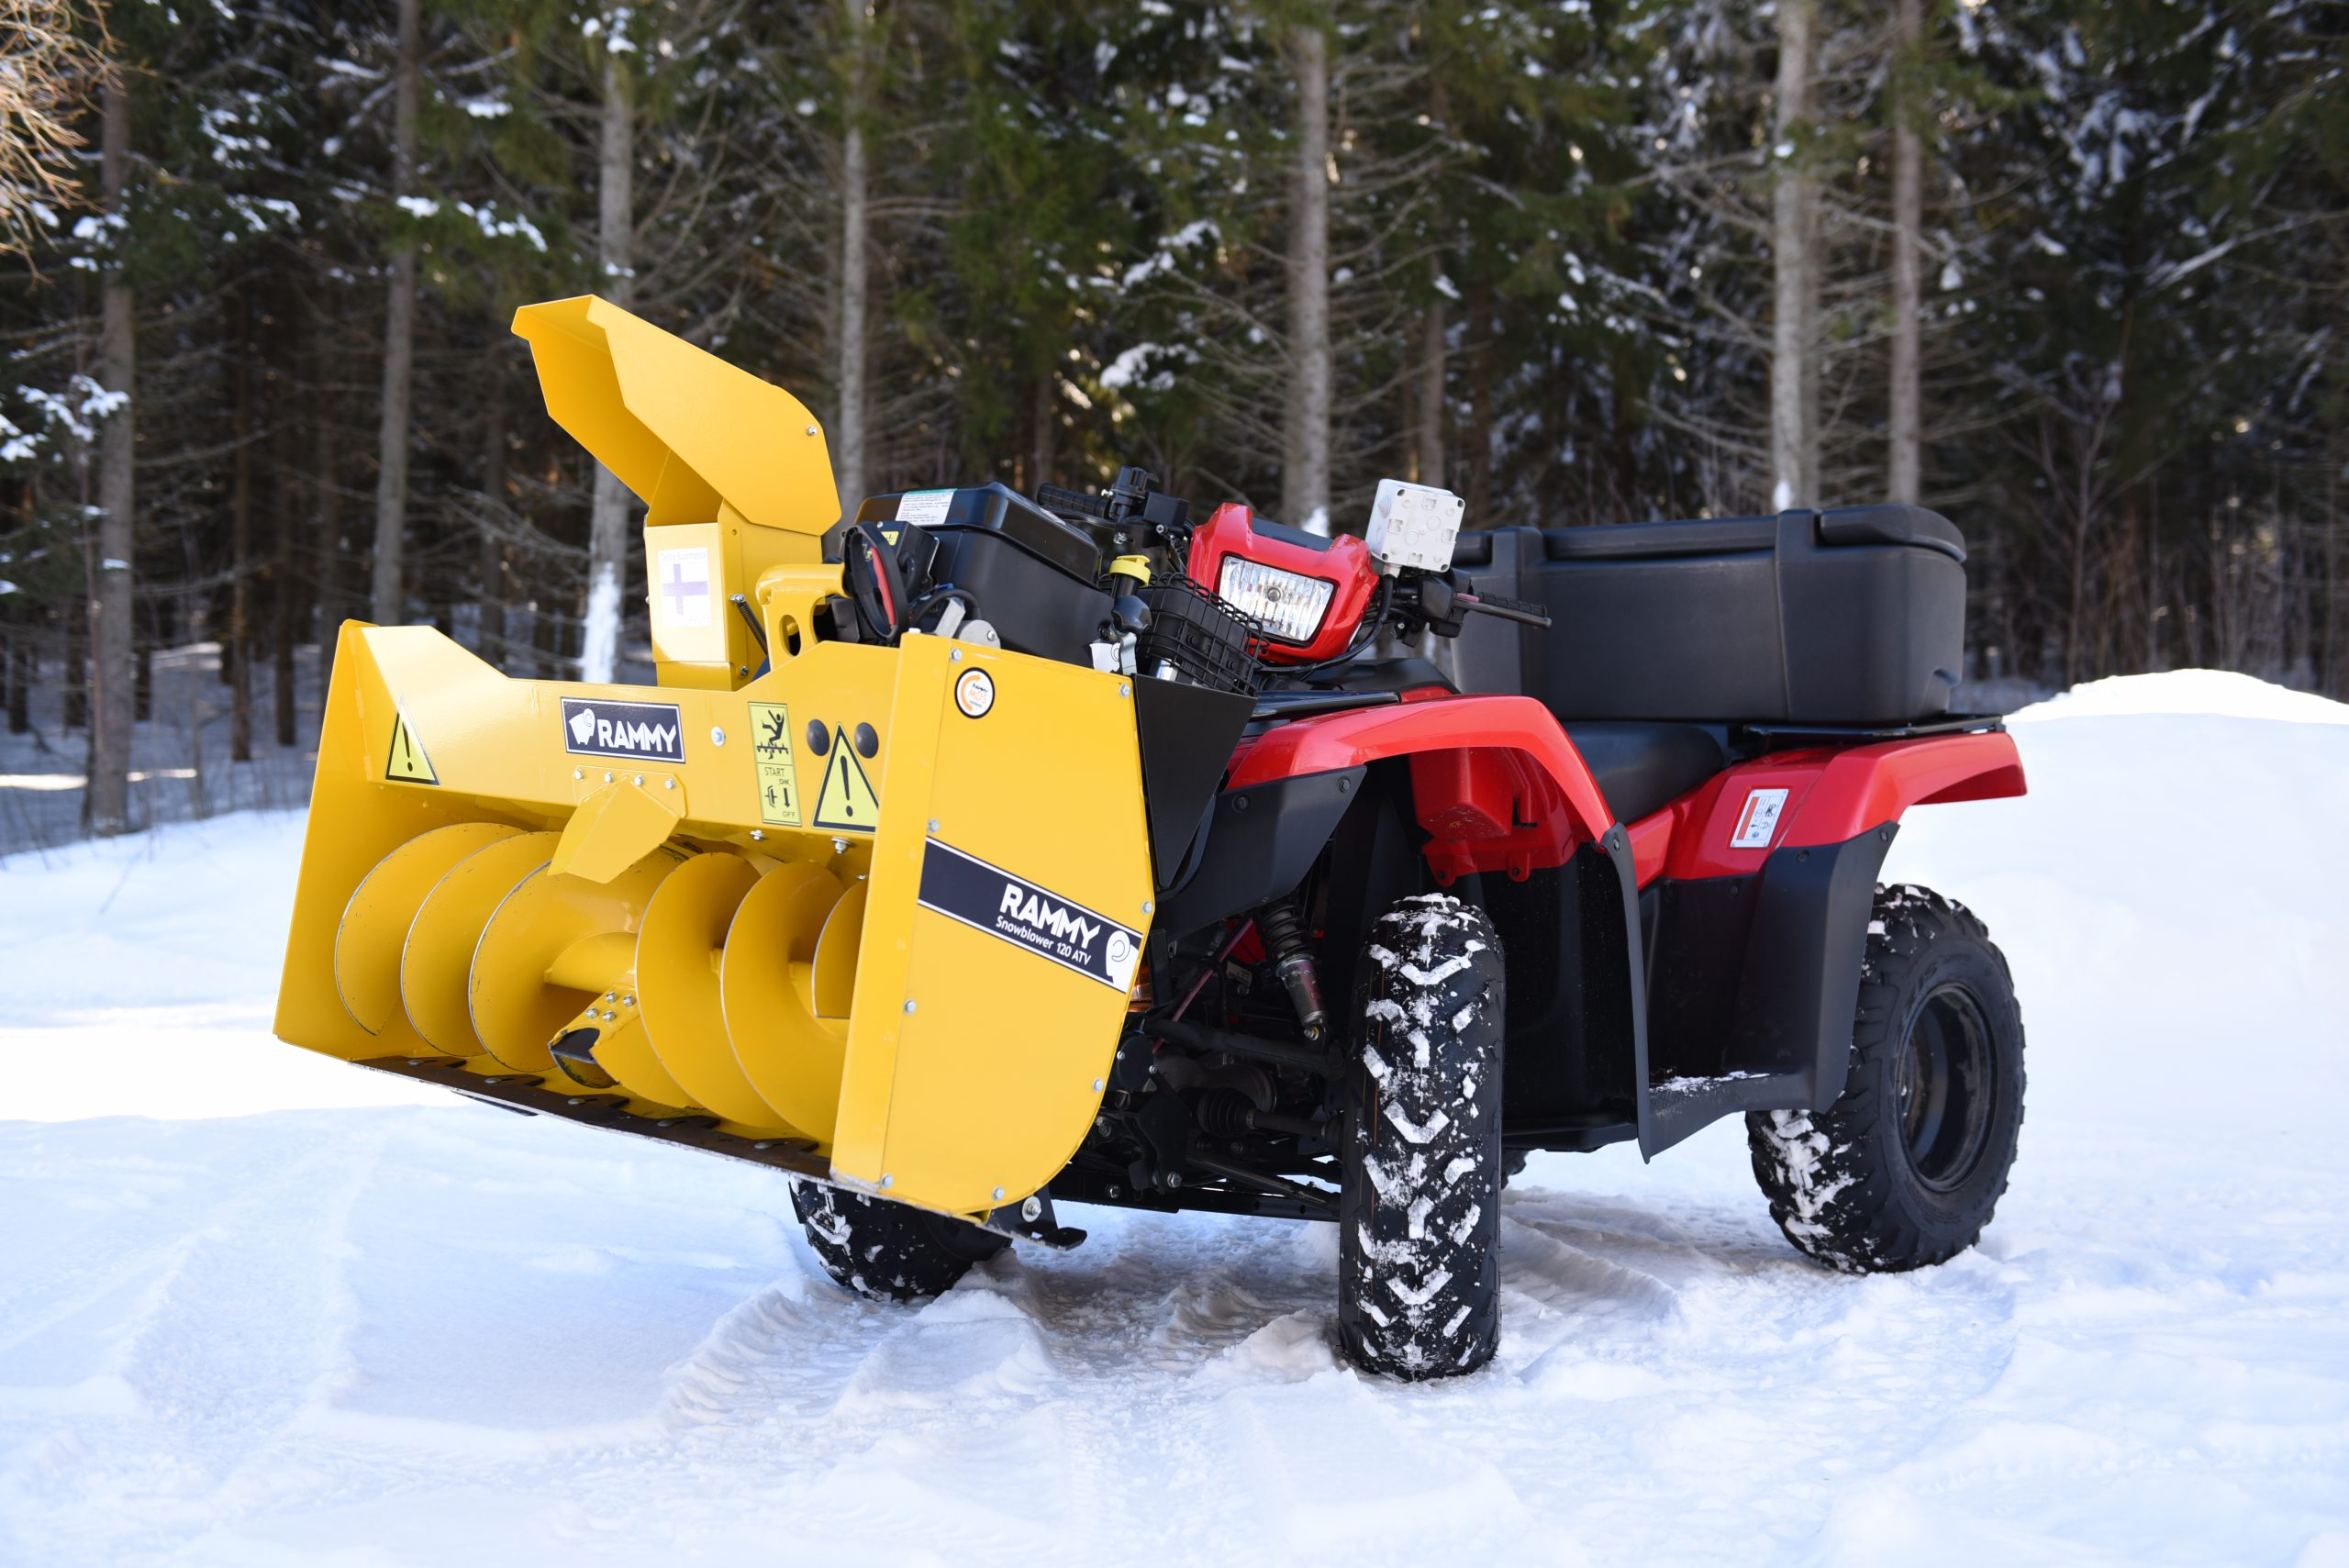 rammy-snowblower-ec-120-atv-2019-5